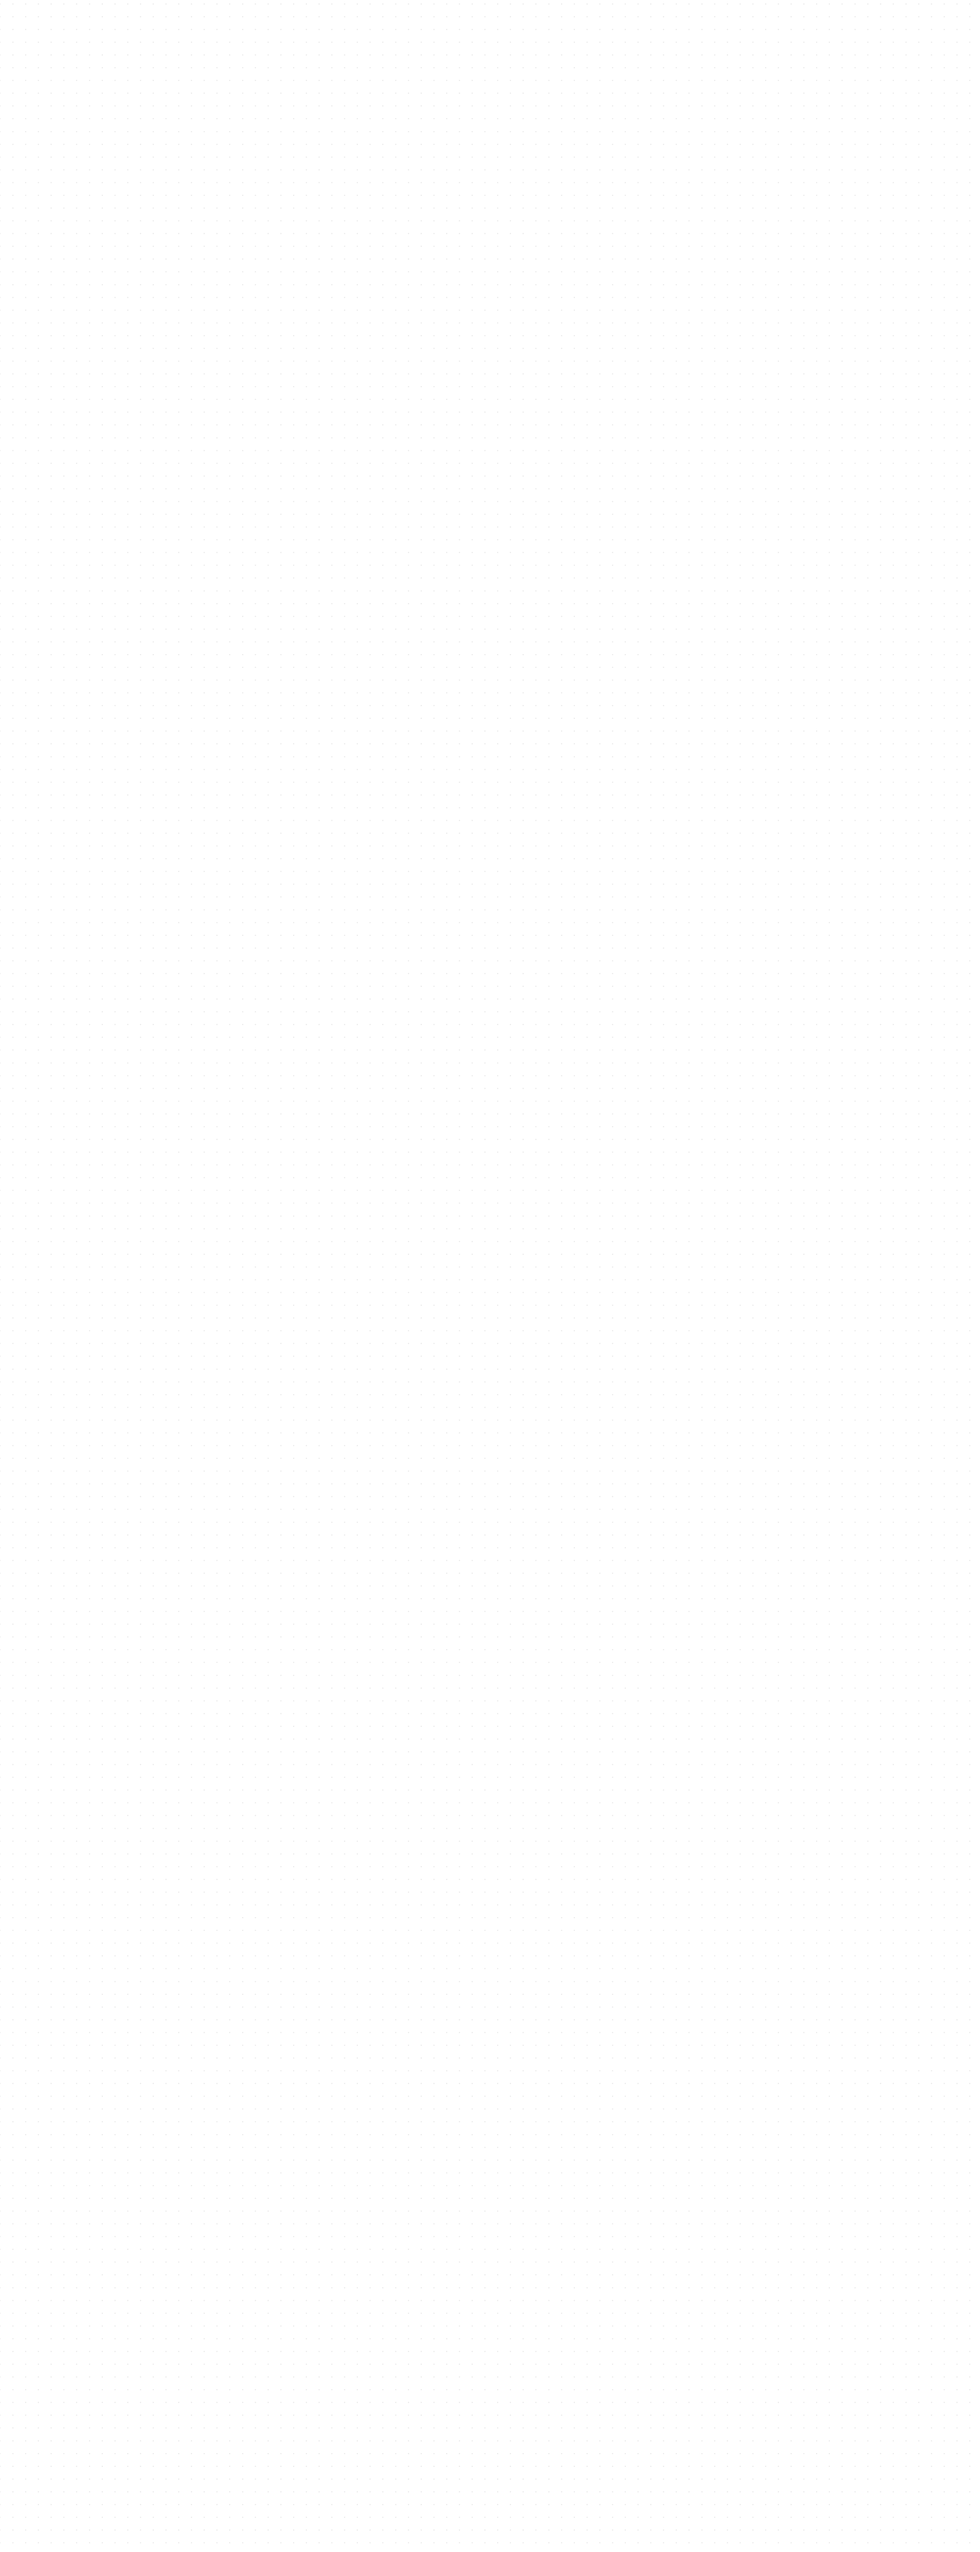 dotted_bg-11.png